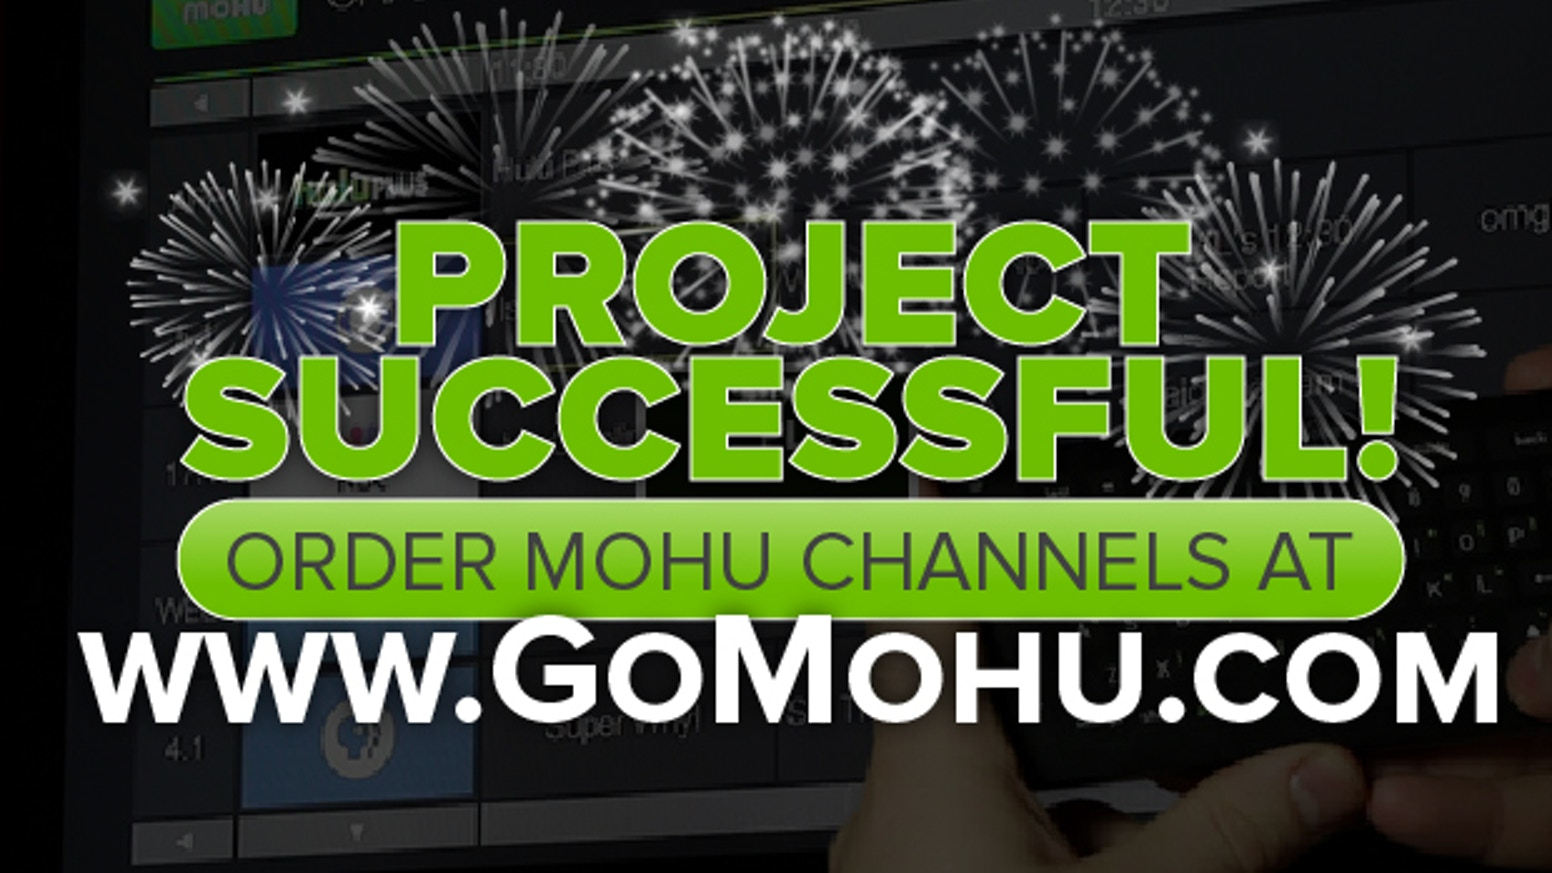 Mohu Channels: Personal Channel Guide Makes TV Smarter! by Mohu